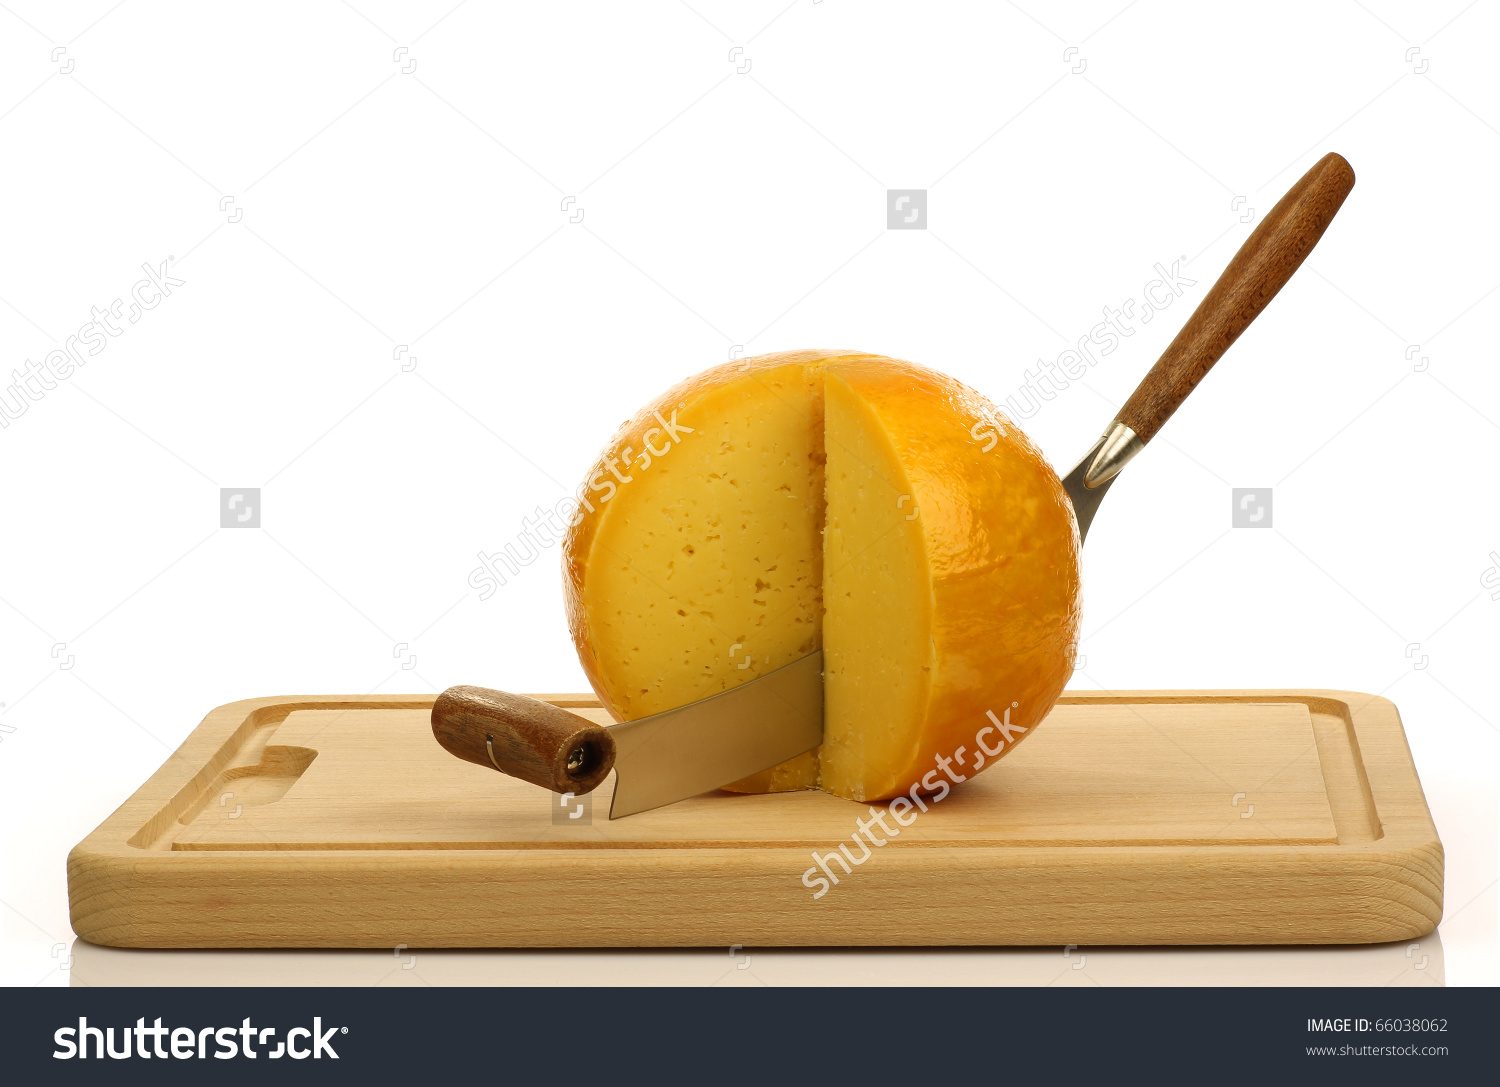 Cut Pieces Of Dutch Edam Cheese With A Cheese Cutter On A Cutting.